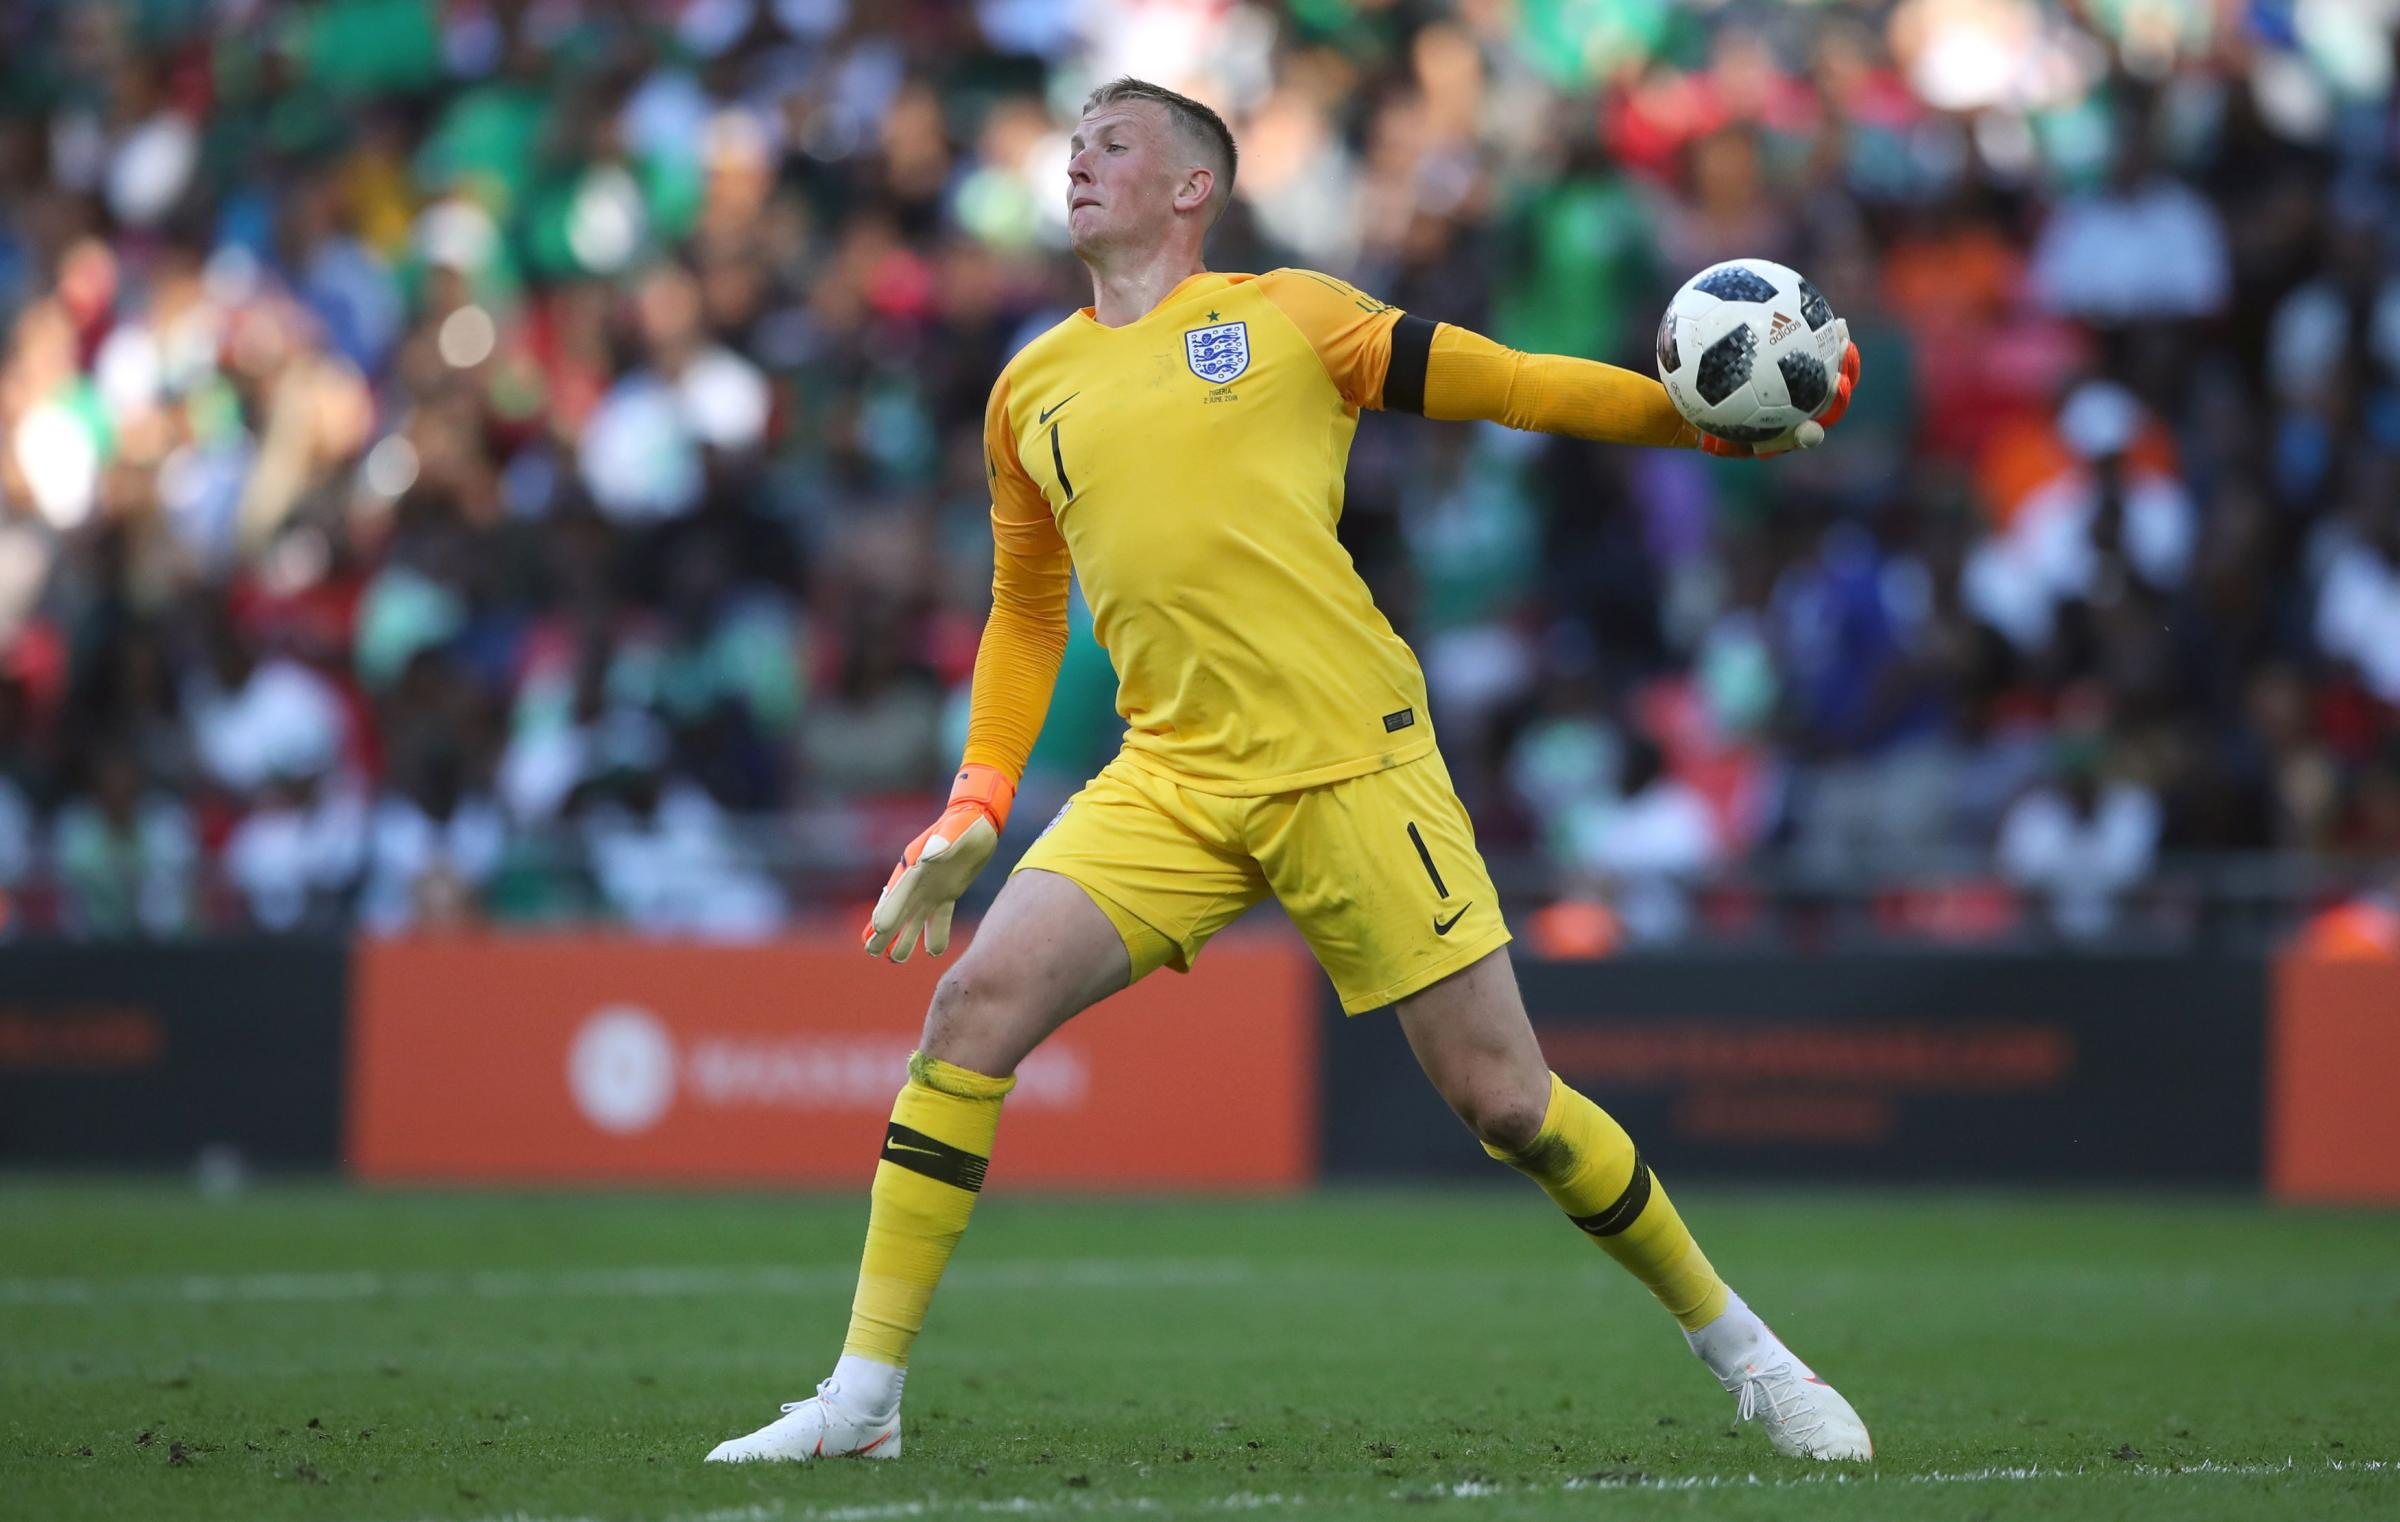 Jordan Pickford appears to have won the race to be England's first-choice goalkeeper at the World Cup